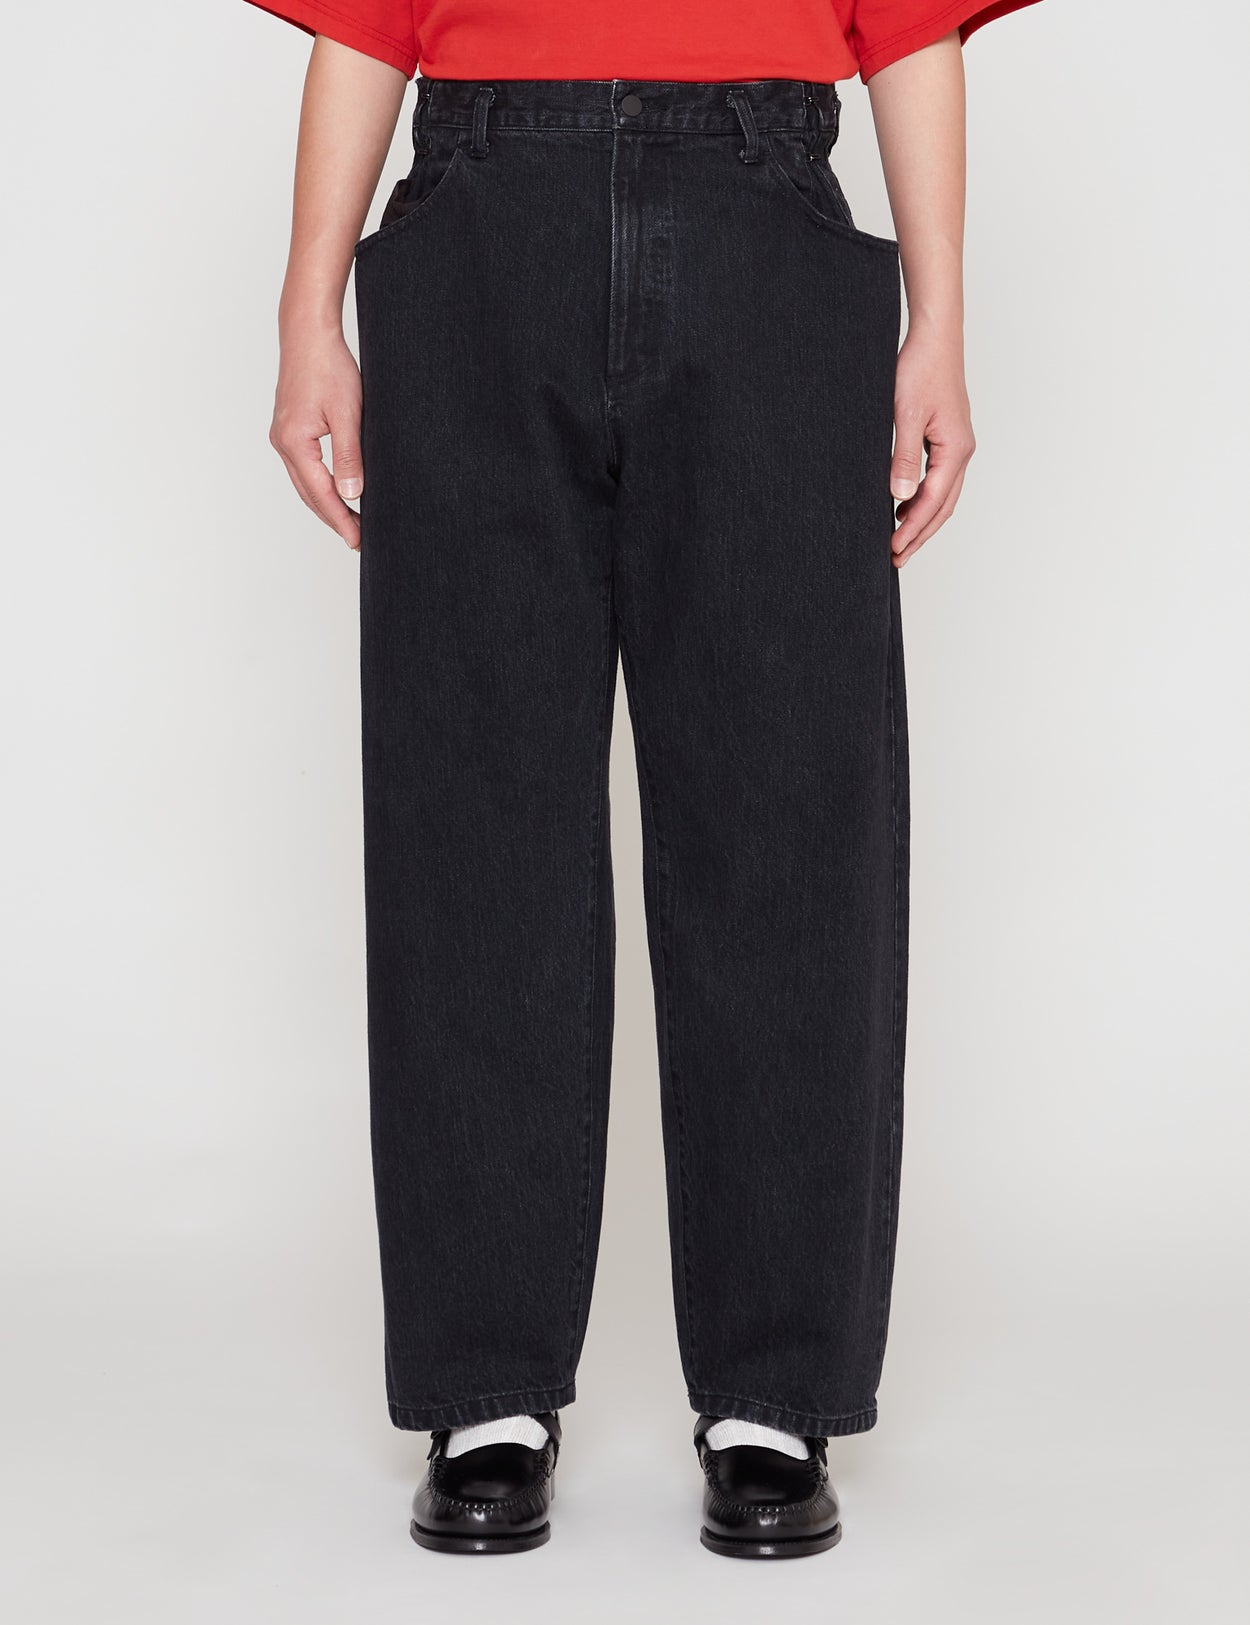 BLACK EX WIDE HOOKED DENIM JEANS